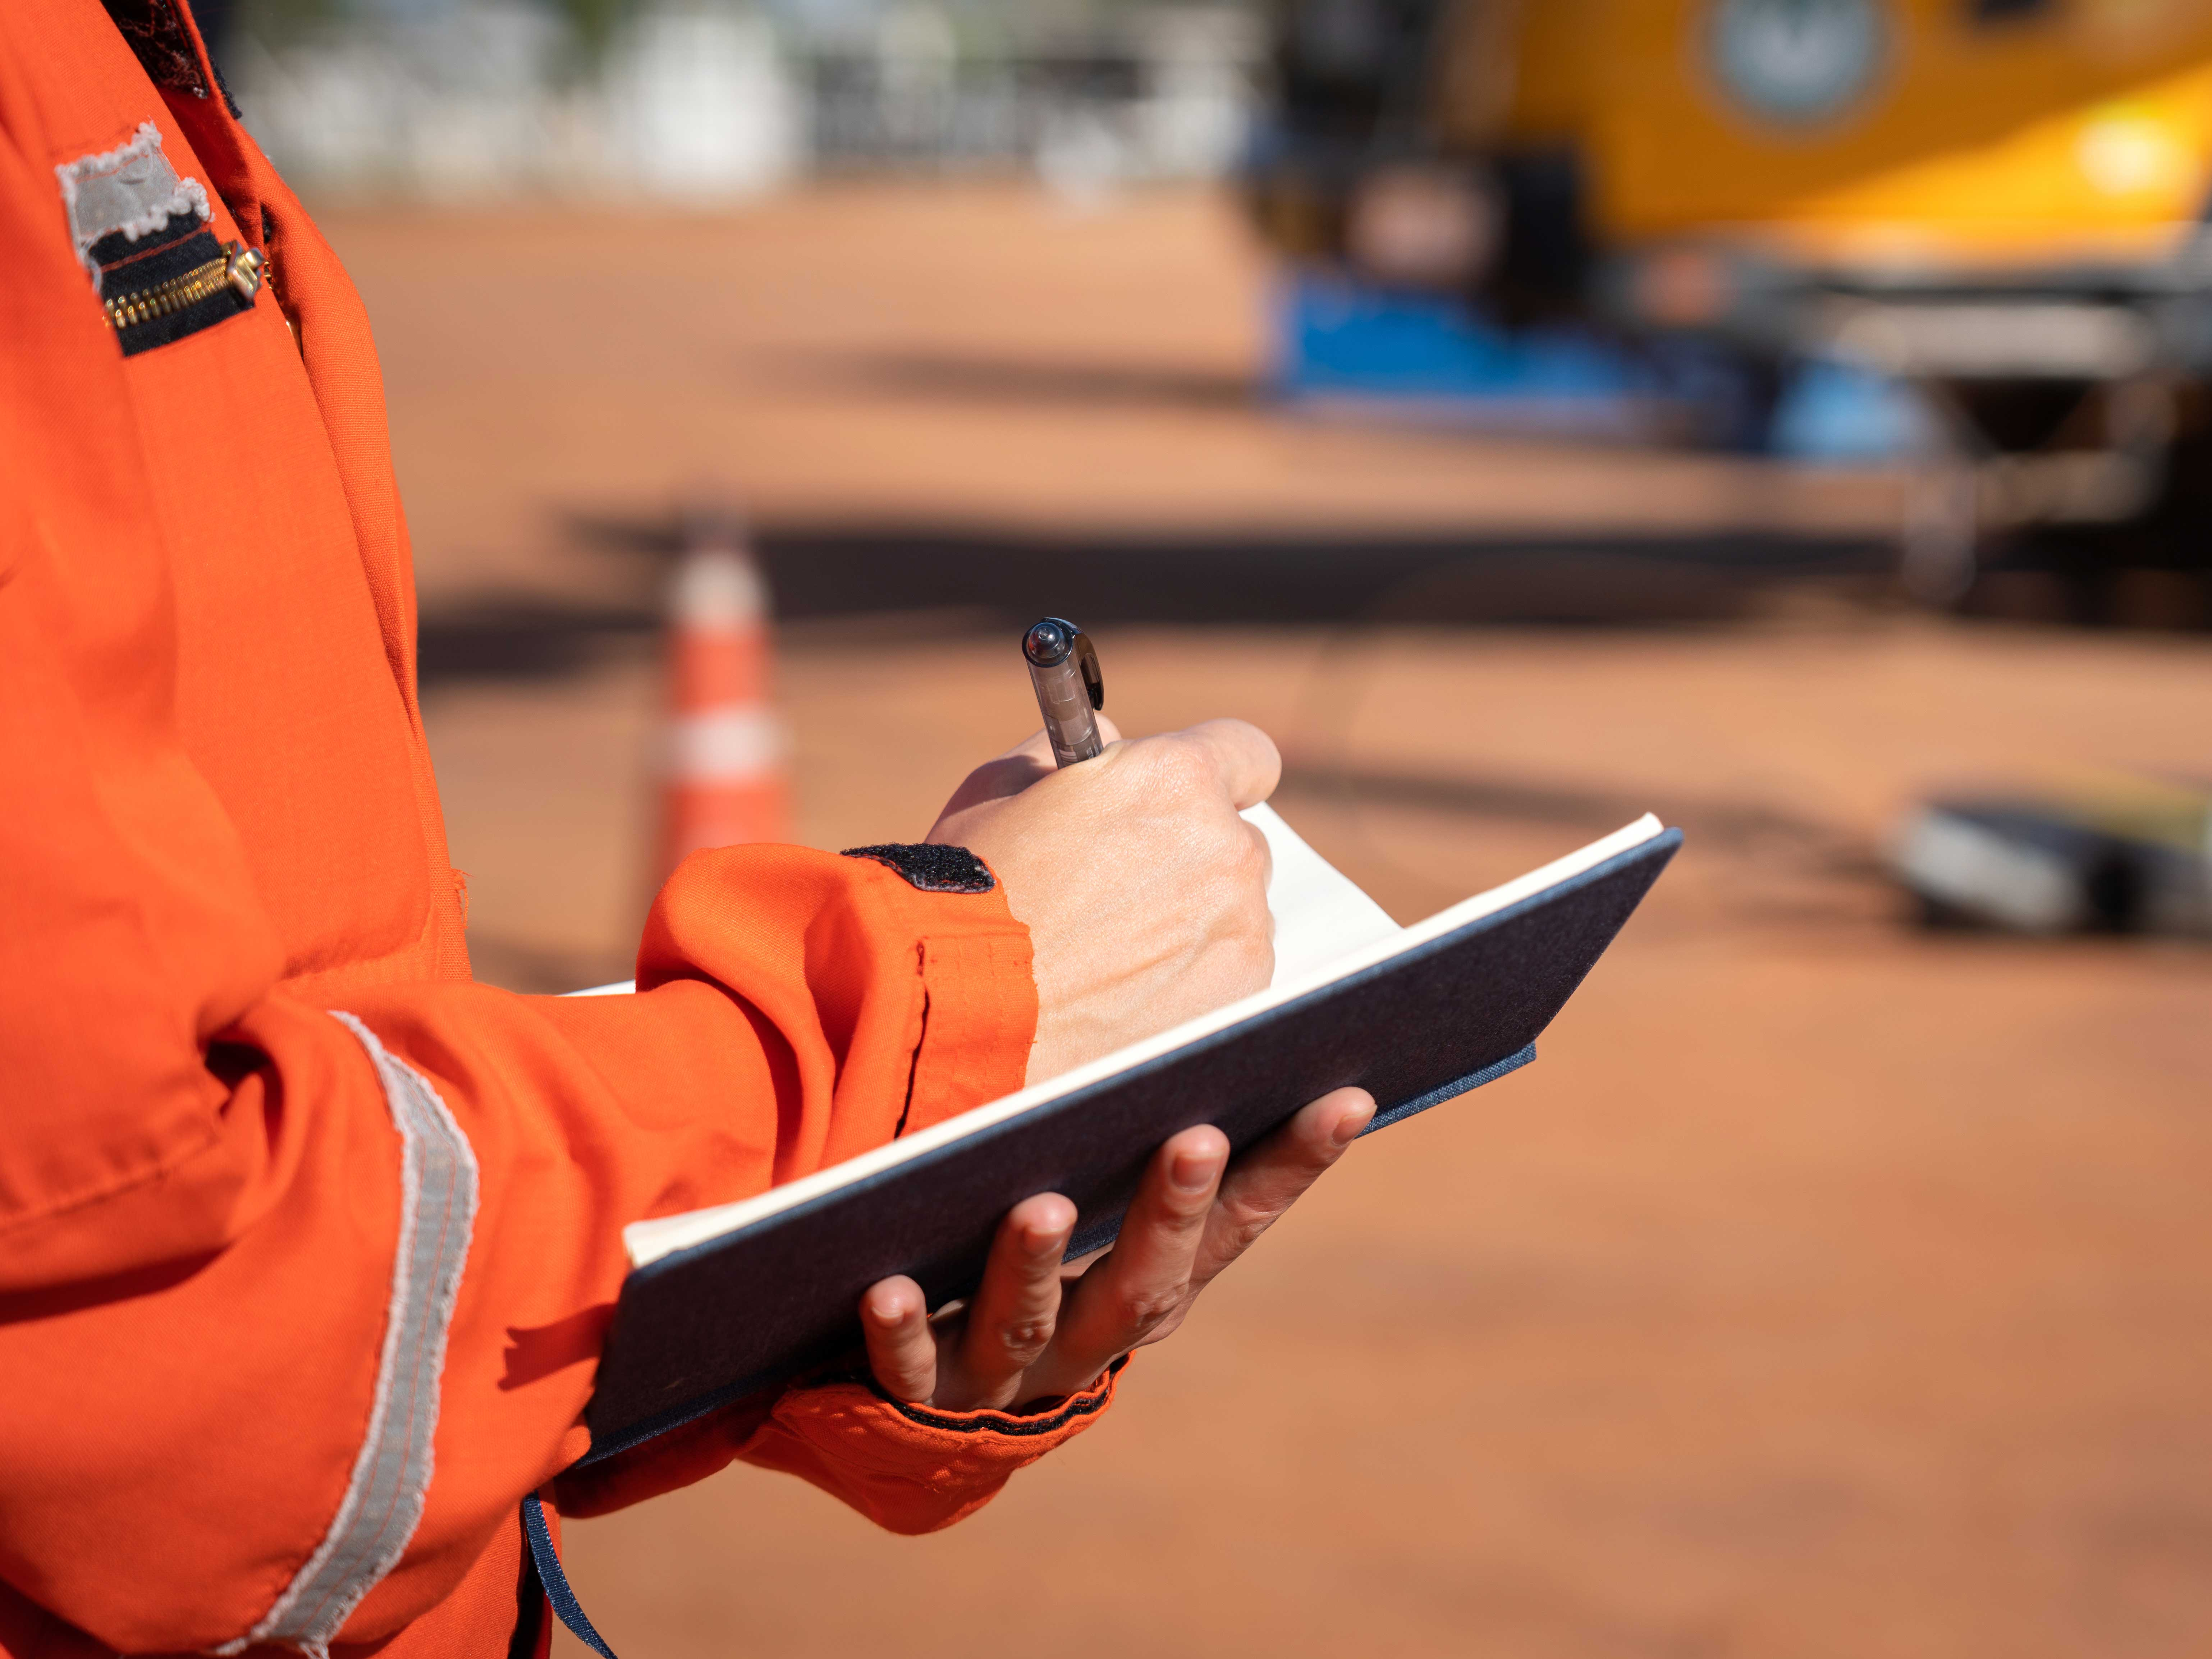 Q&A with the NHVR Director: Compliance and enforcement advice